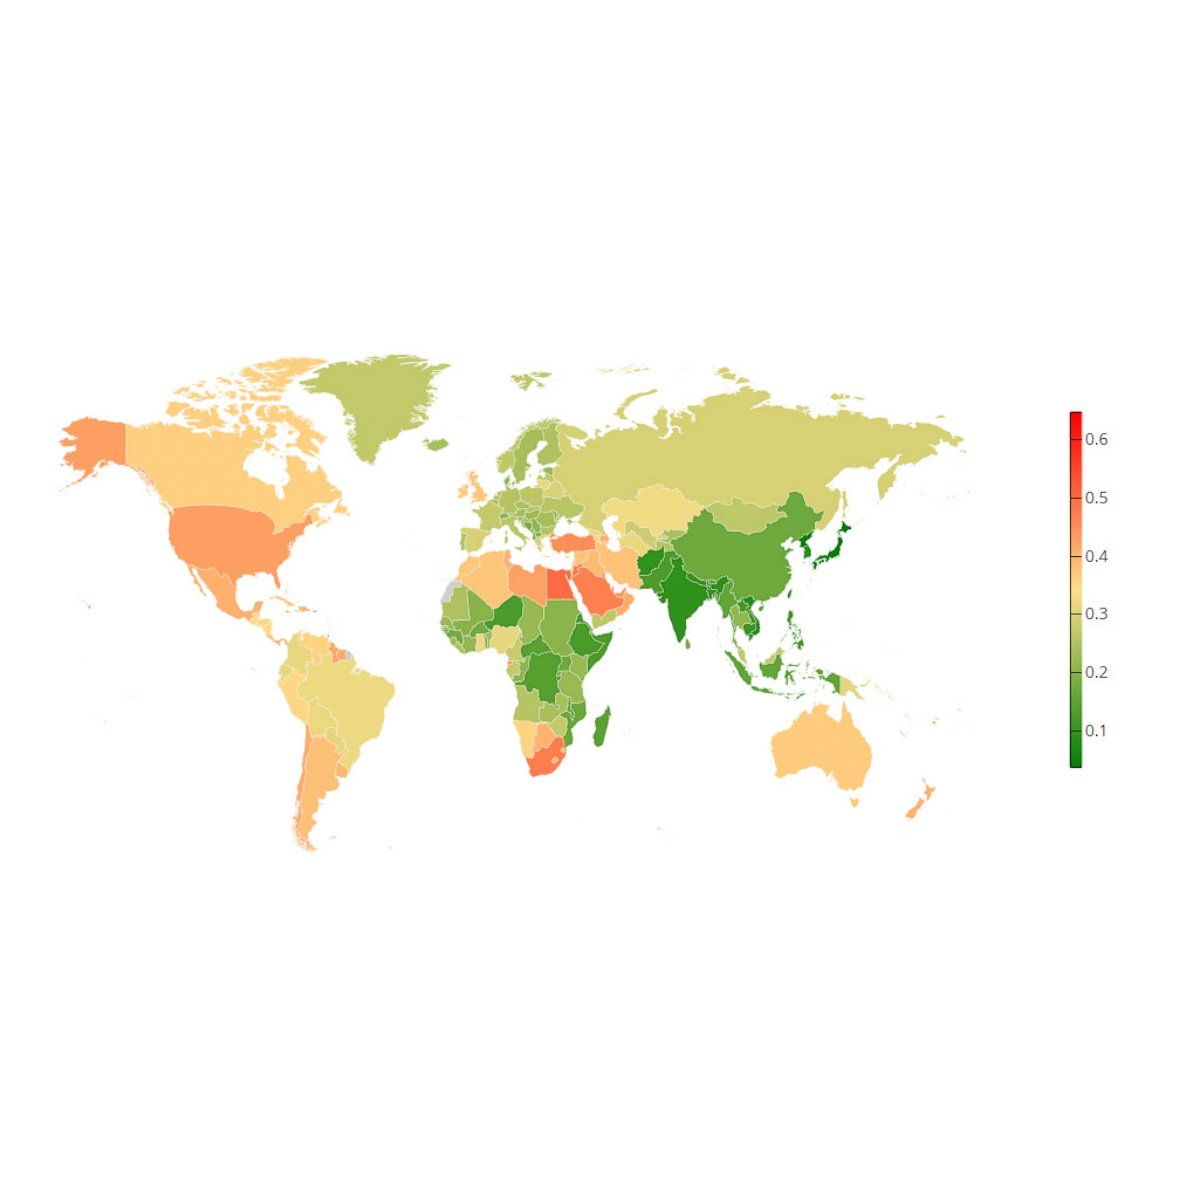 po ncd risc has released this world map showing a projection of obesity prevalence by country in the world in 2025